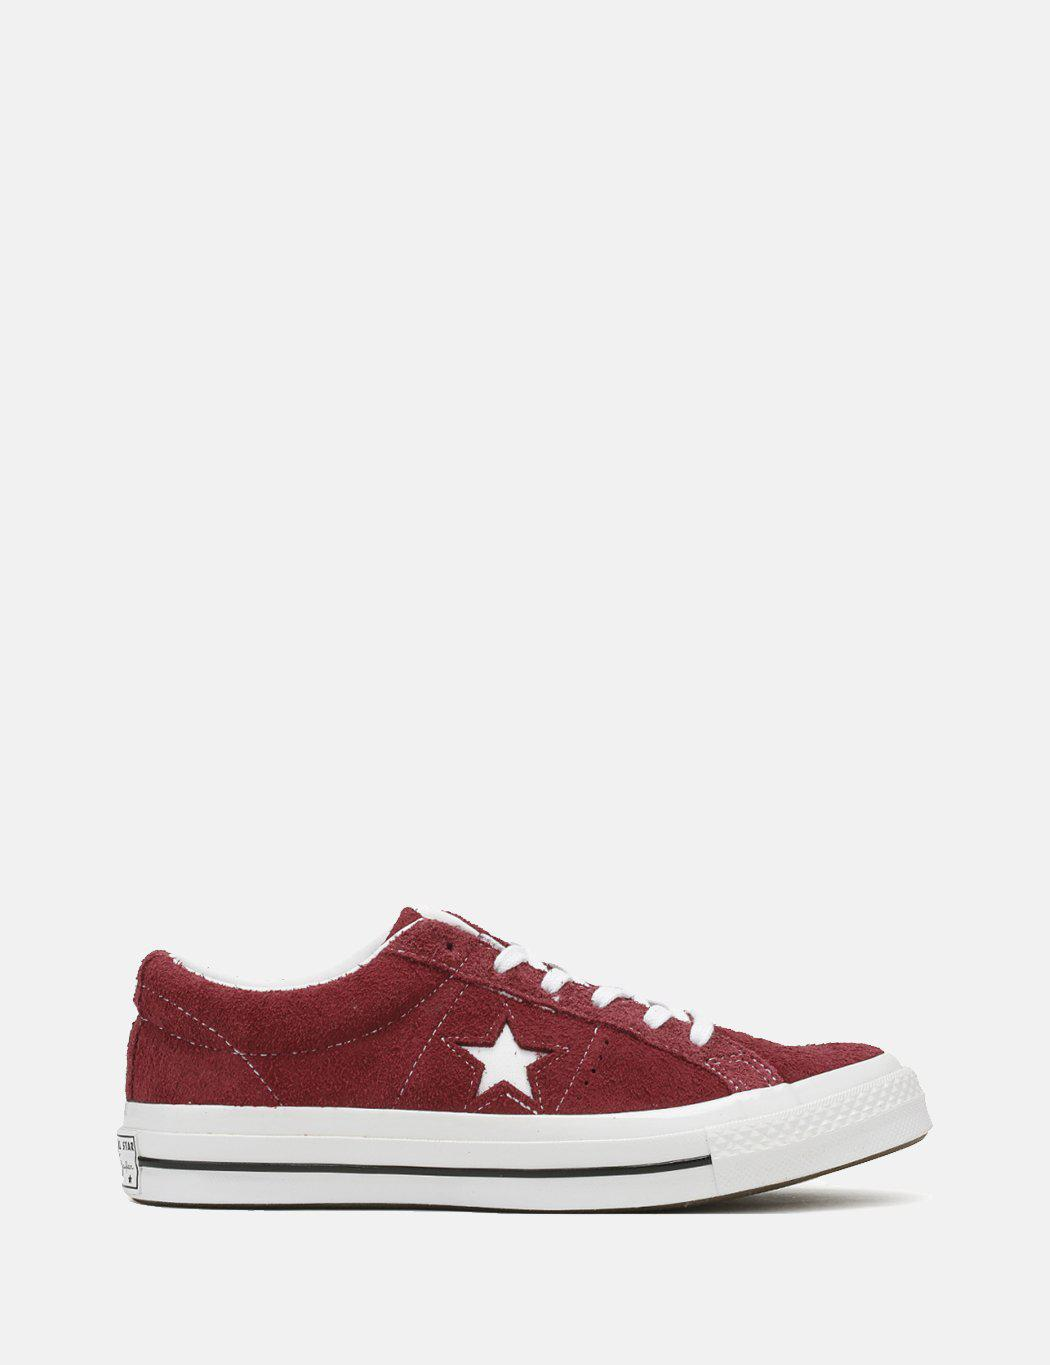 b26cc5fead40 Lyst - Converse Unisex Adults  Lifestyle One Star Ox Suede Fitness ...